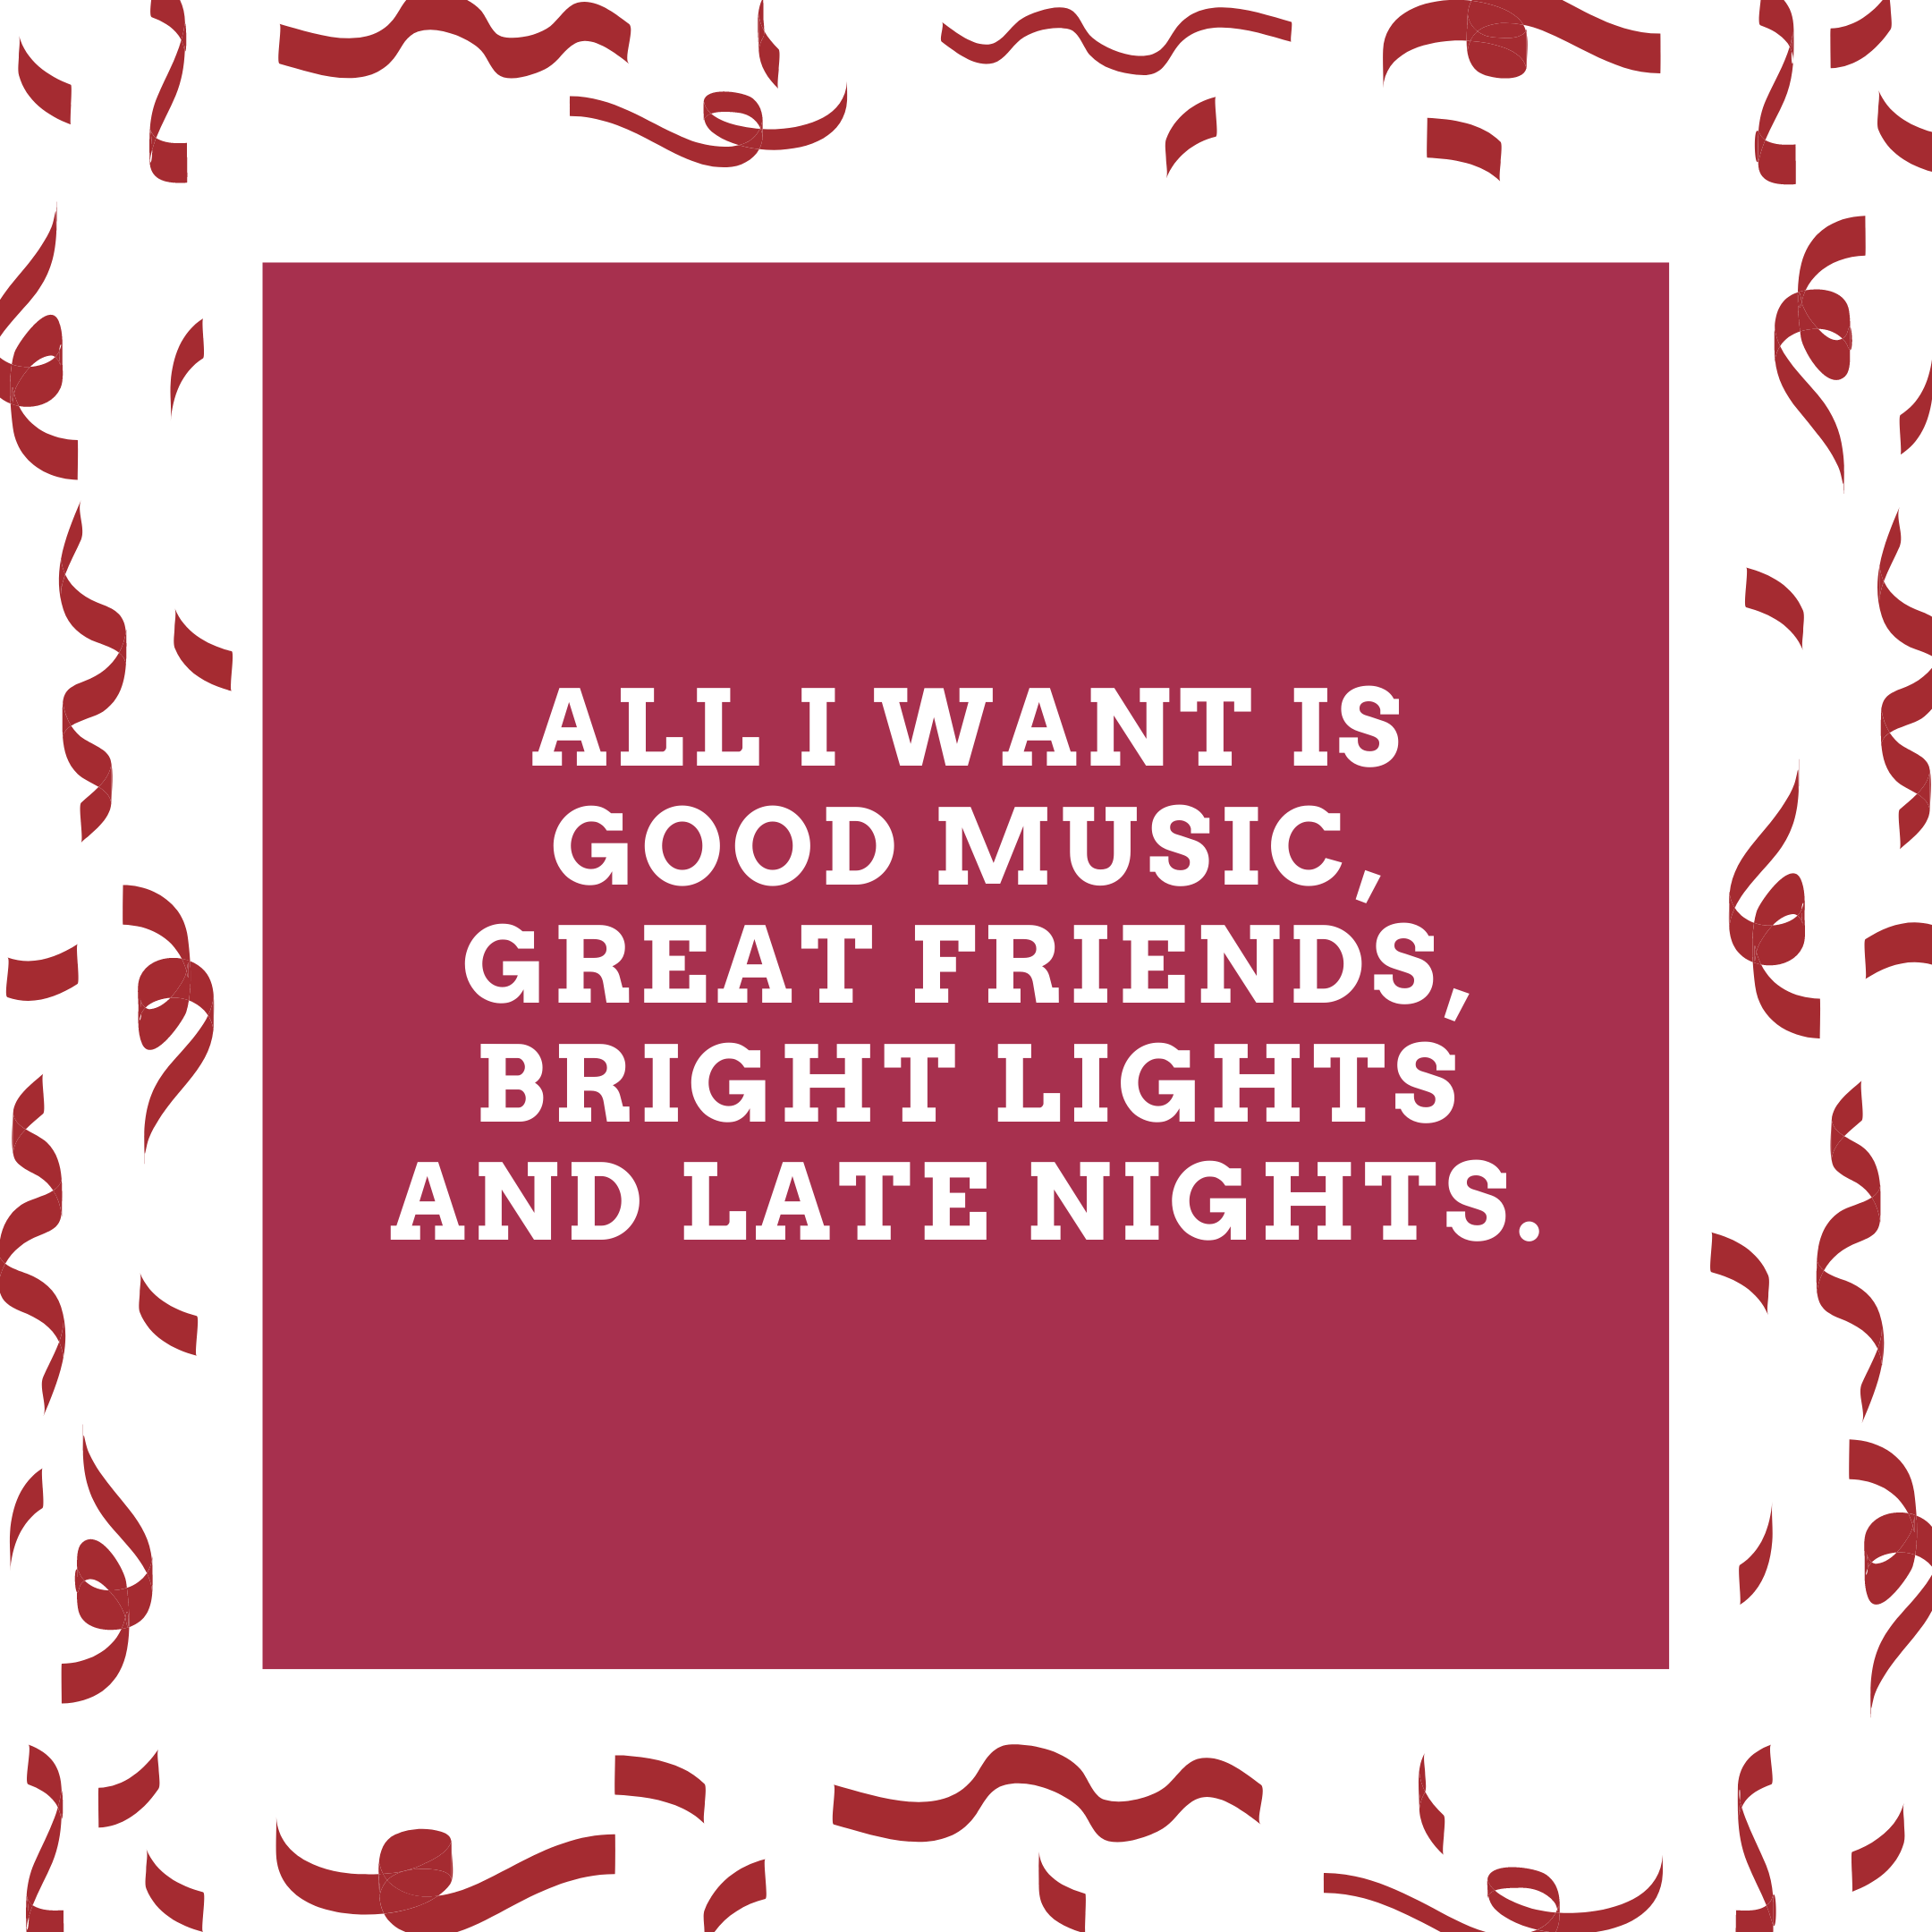 All I want is good music, great friends, bright lights and late nights.